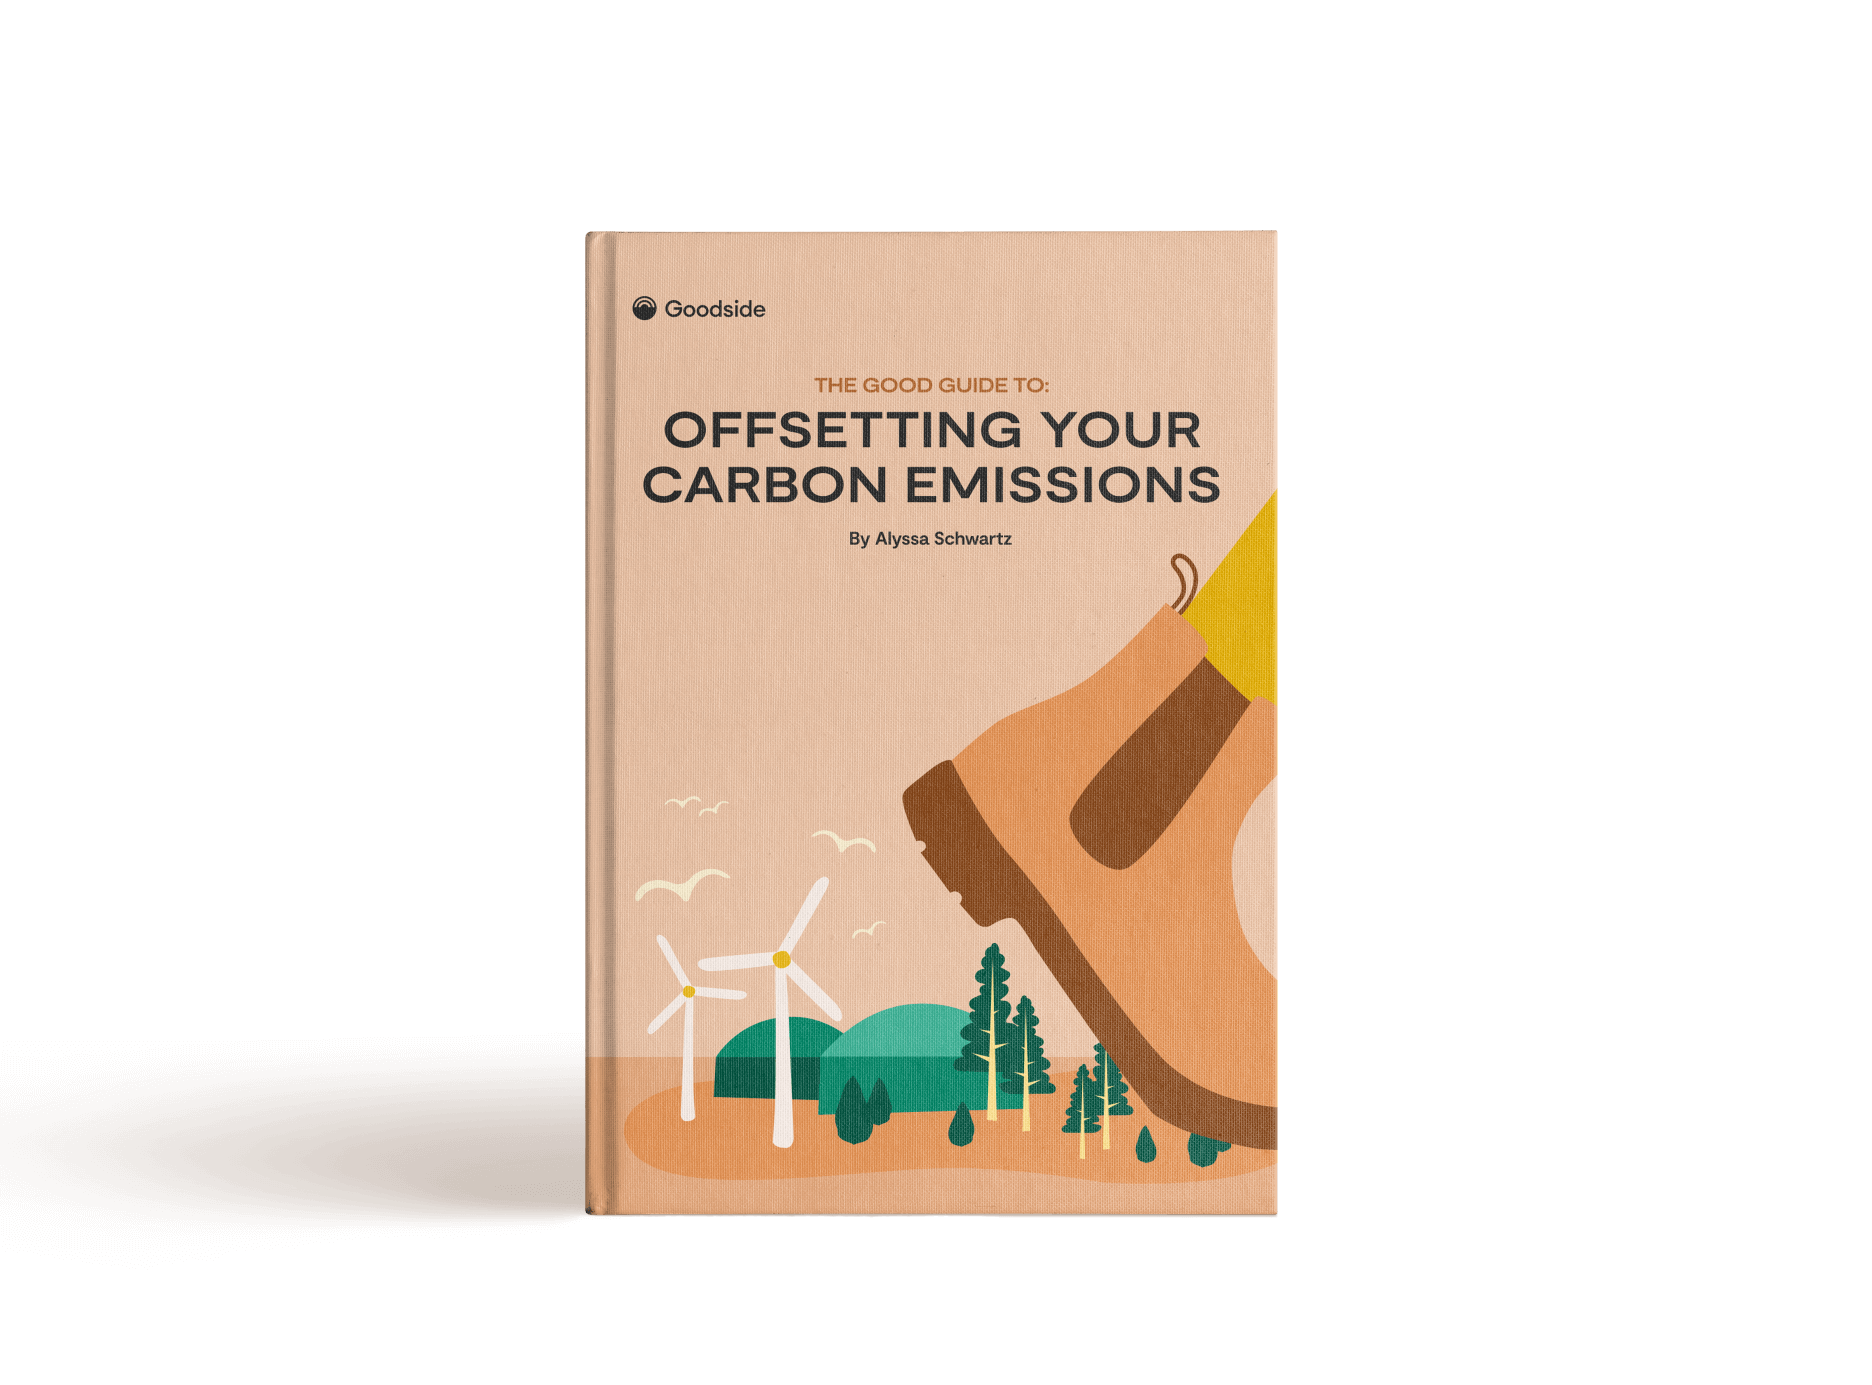 Offsetting Your Carbon Emissions